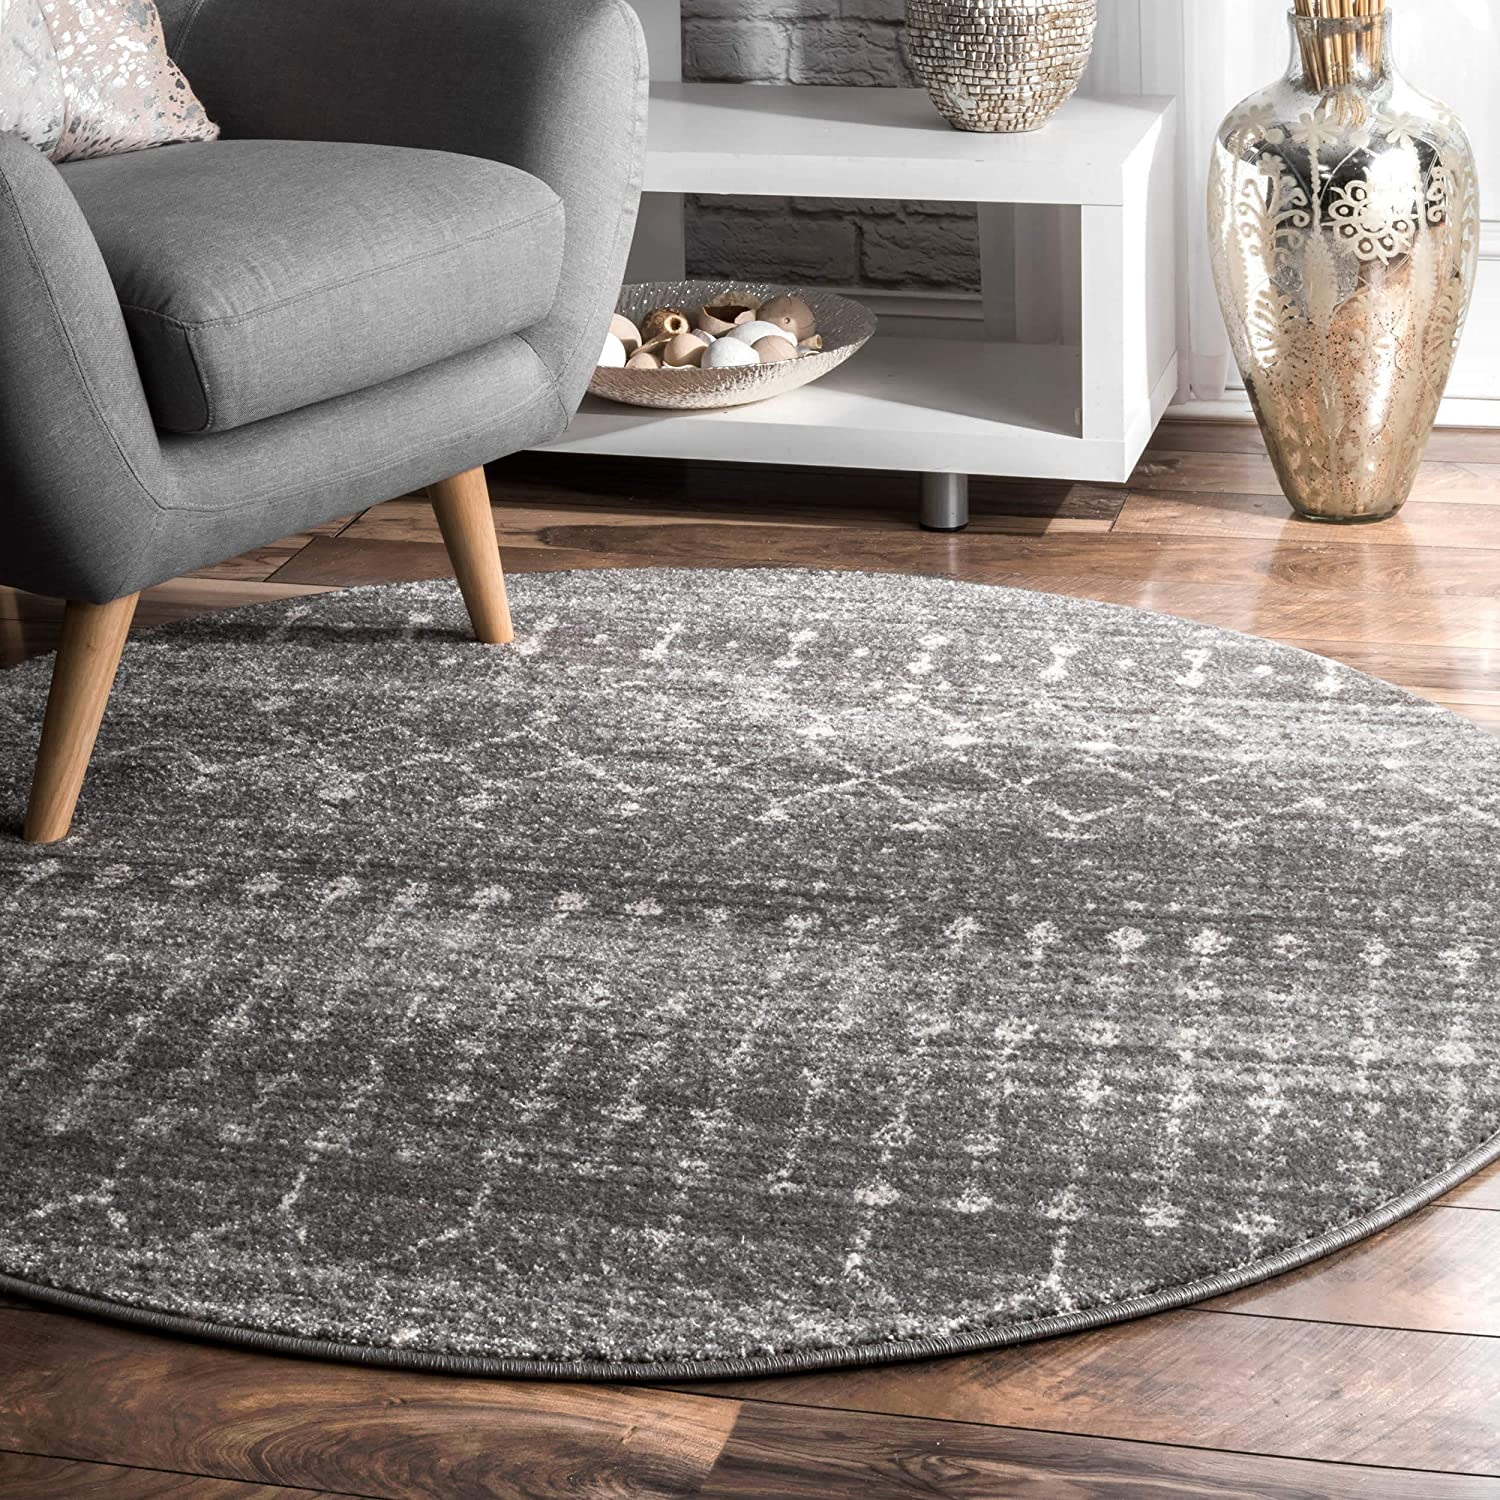 4 x 6 Grey//Off-White nuLOOM Moroccan Blythe Area Rug